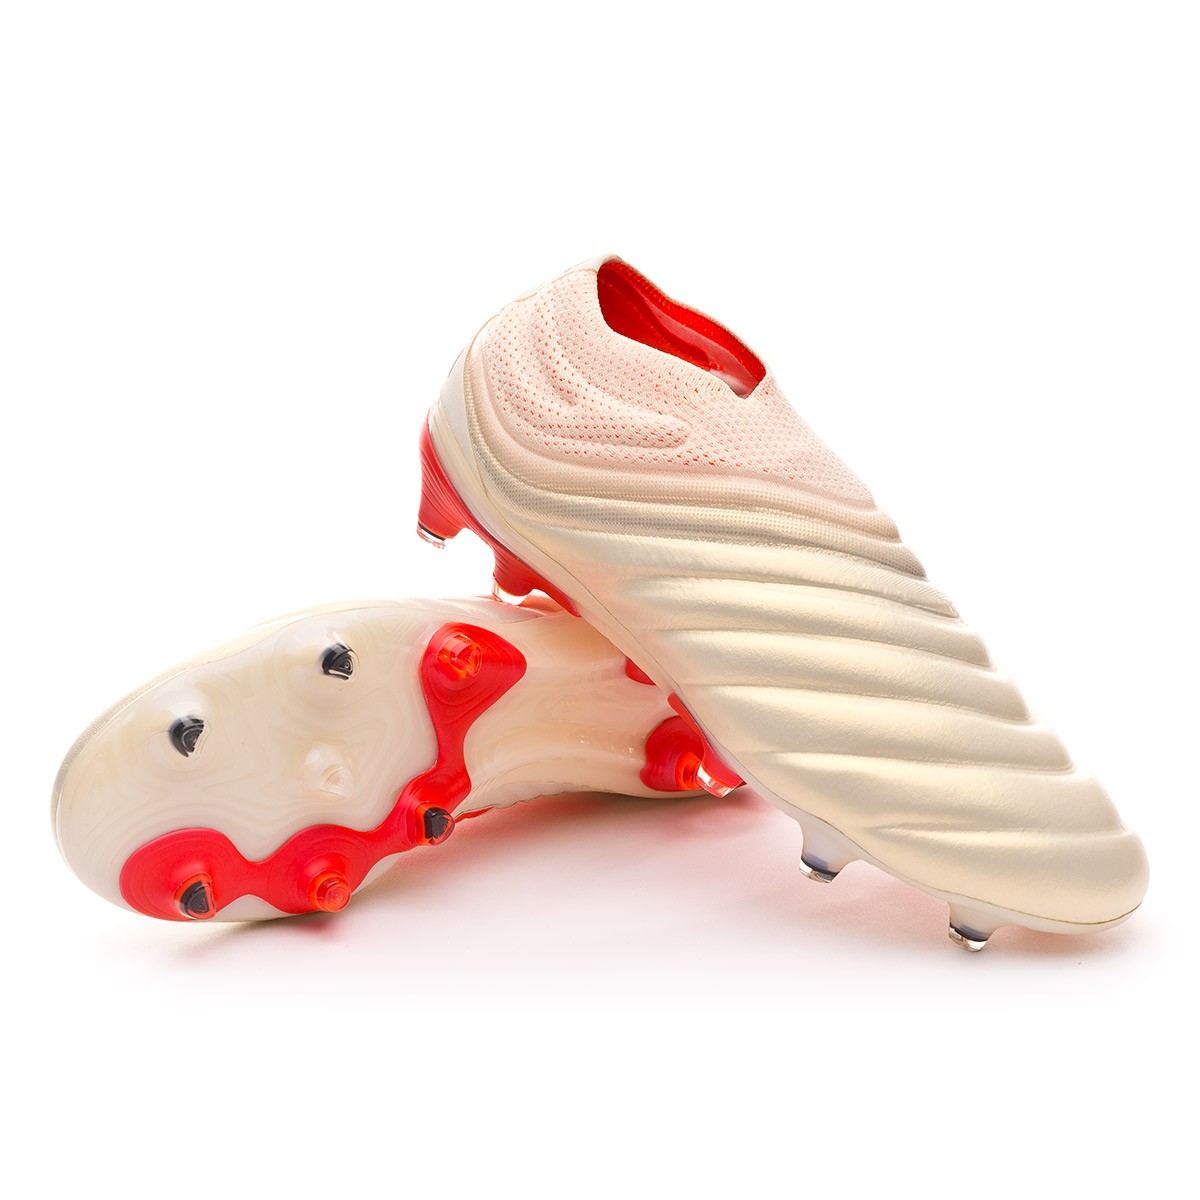 Boot adidas Copa 19+ FG Off white-Solar red-Off white - Football ... a32228333